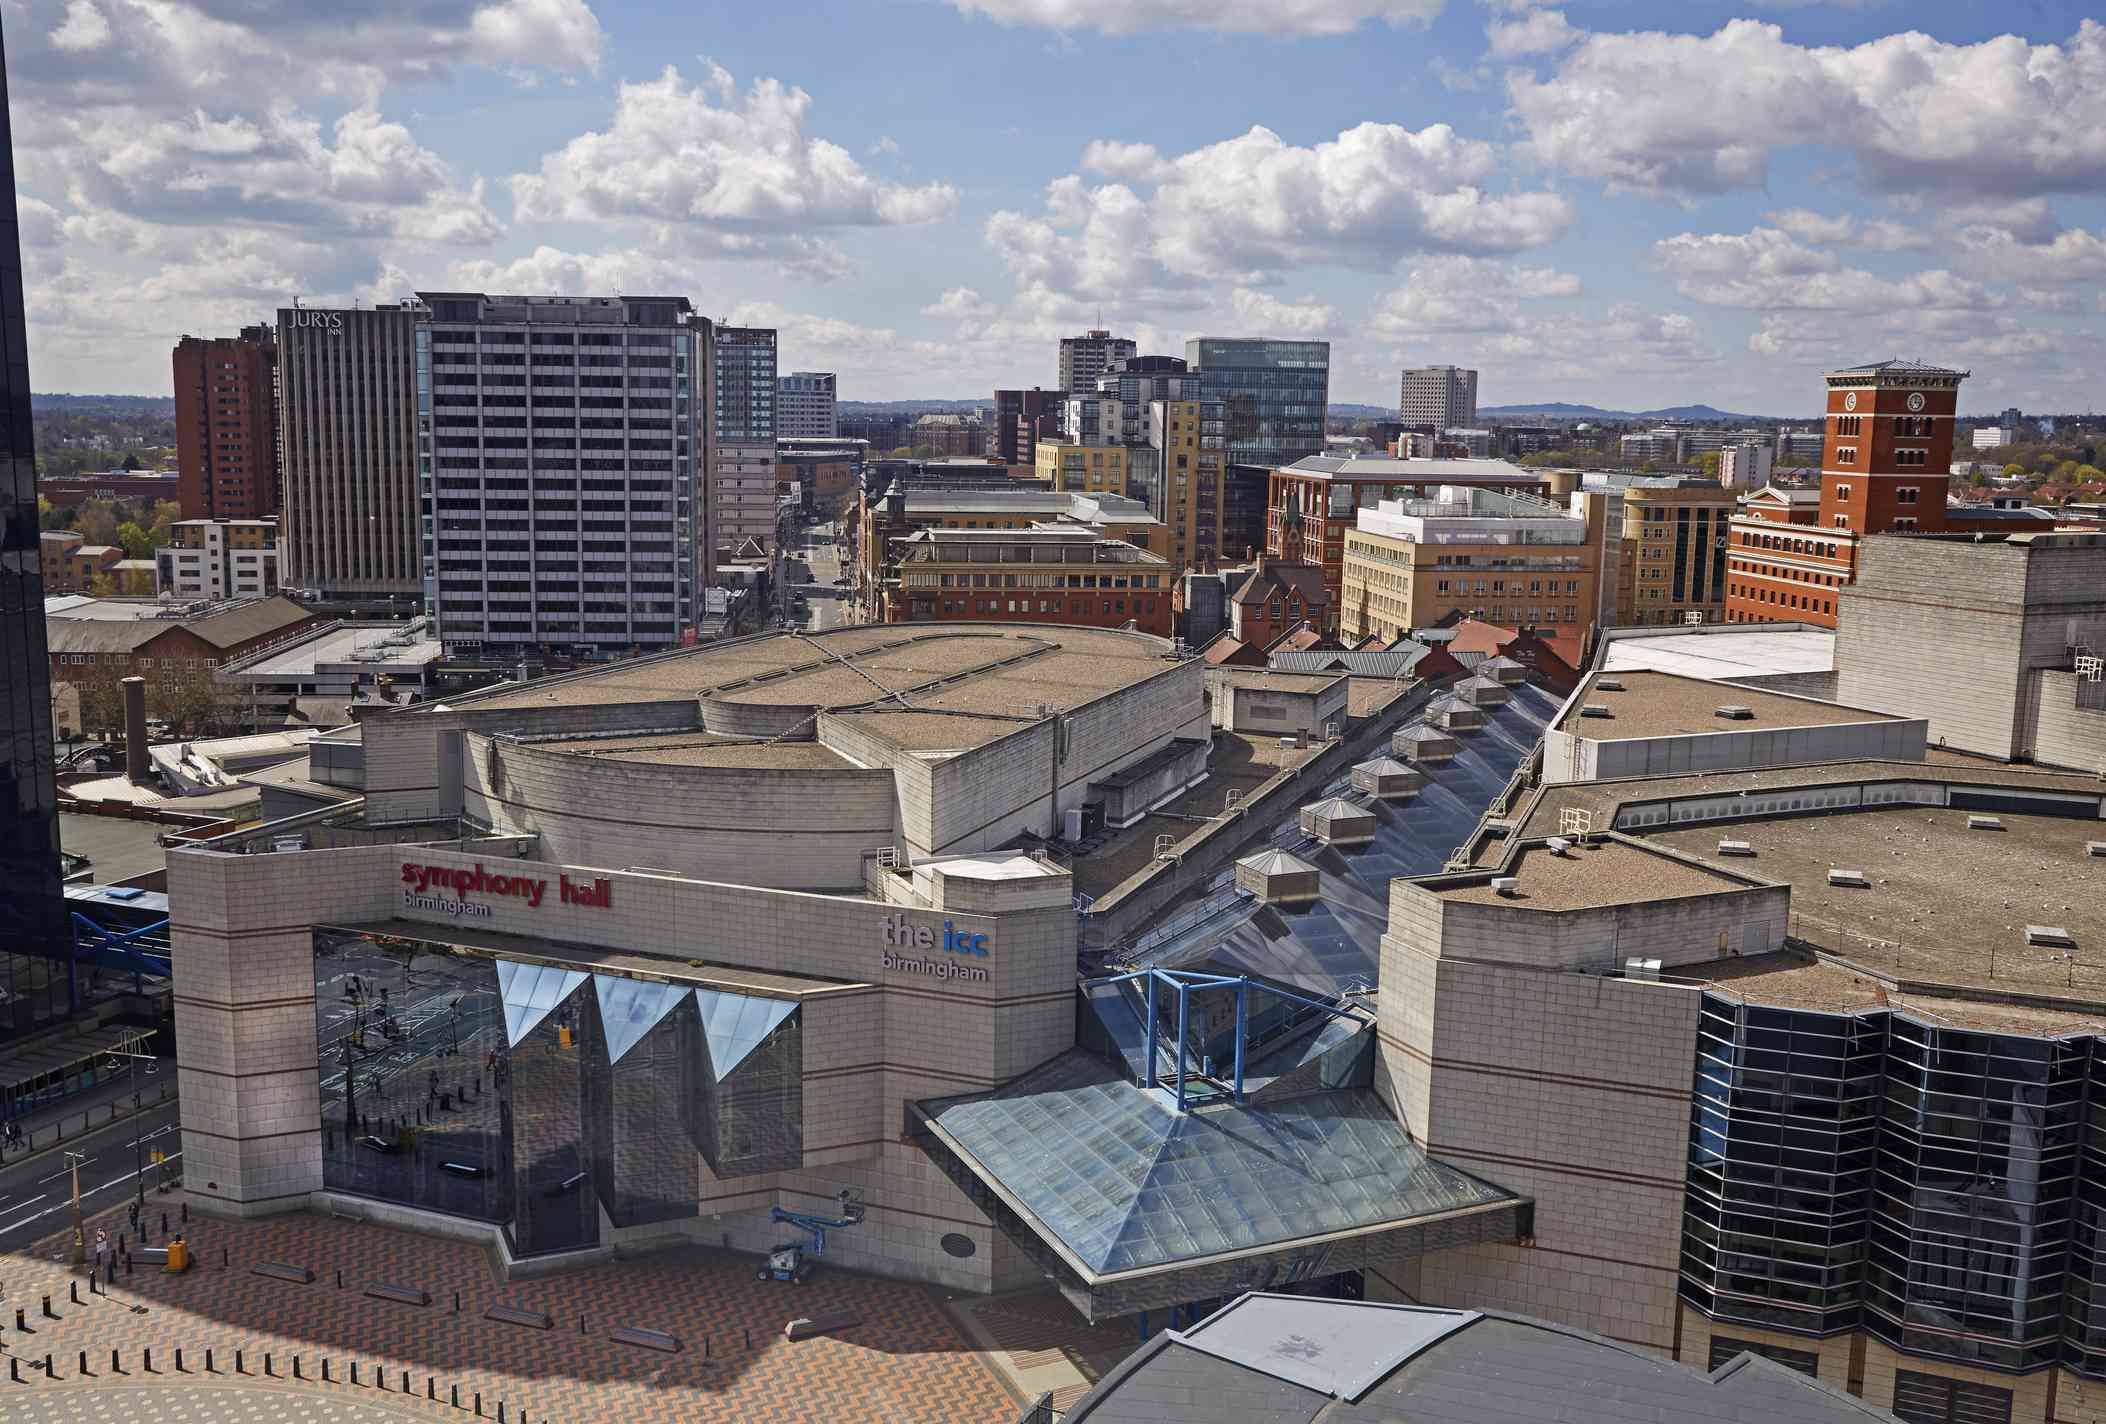 A view of Birmingham's Symphony Hall and theater